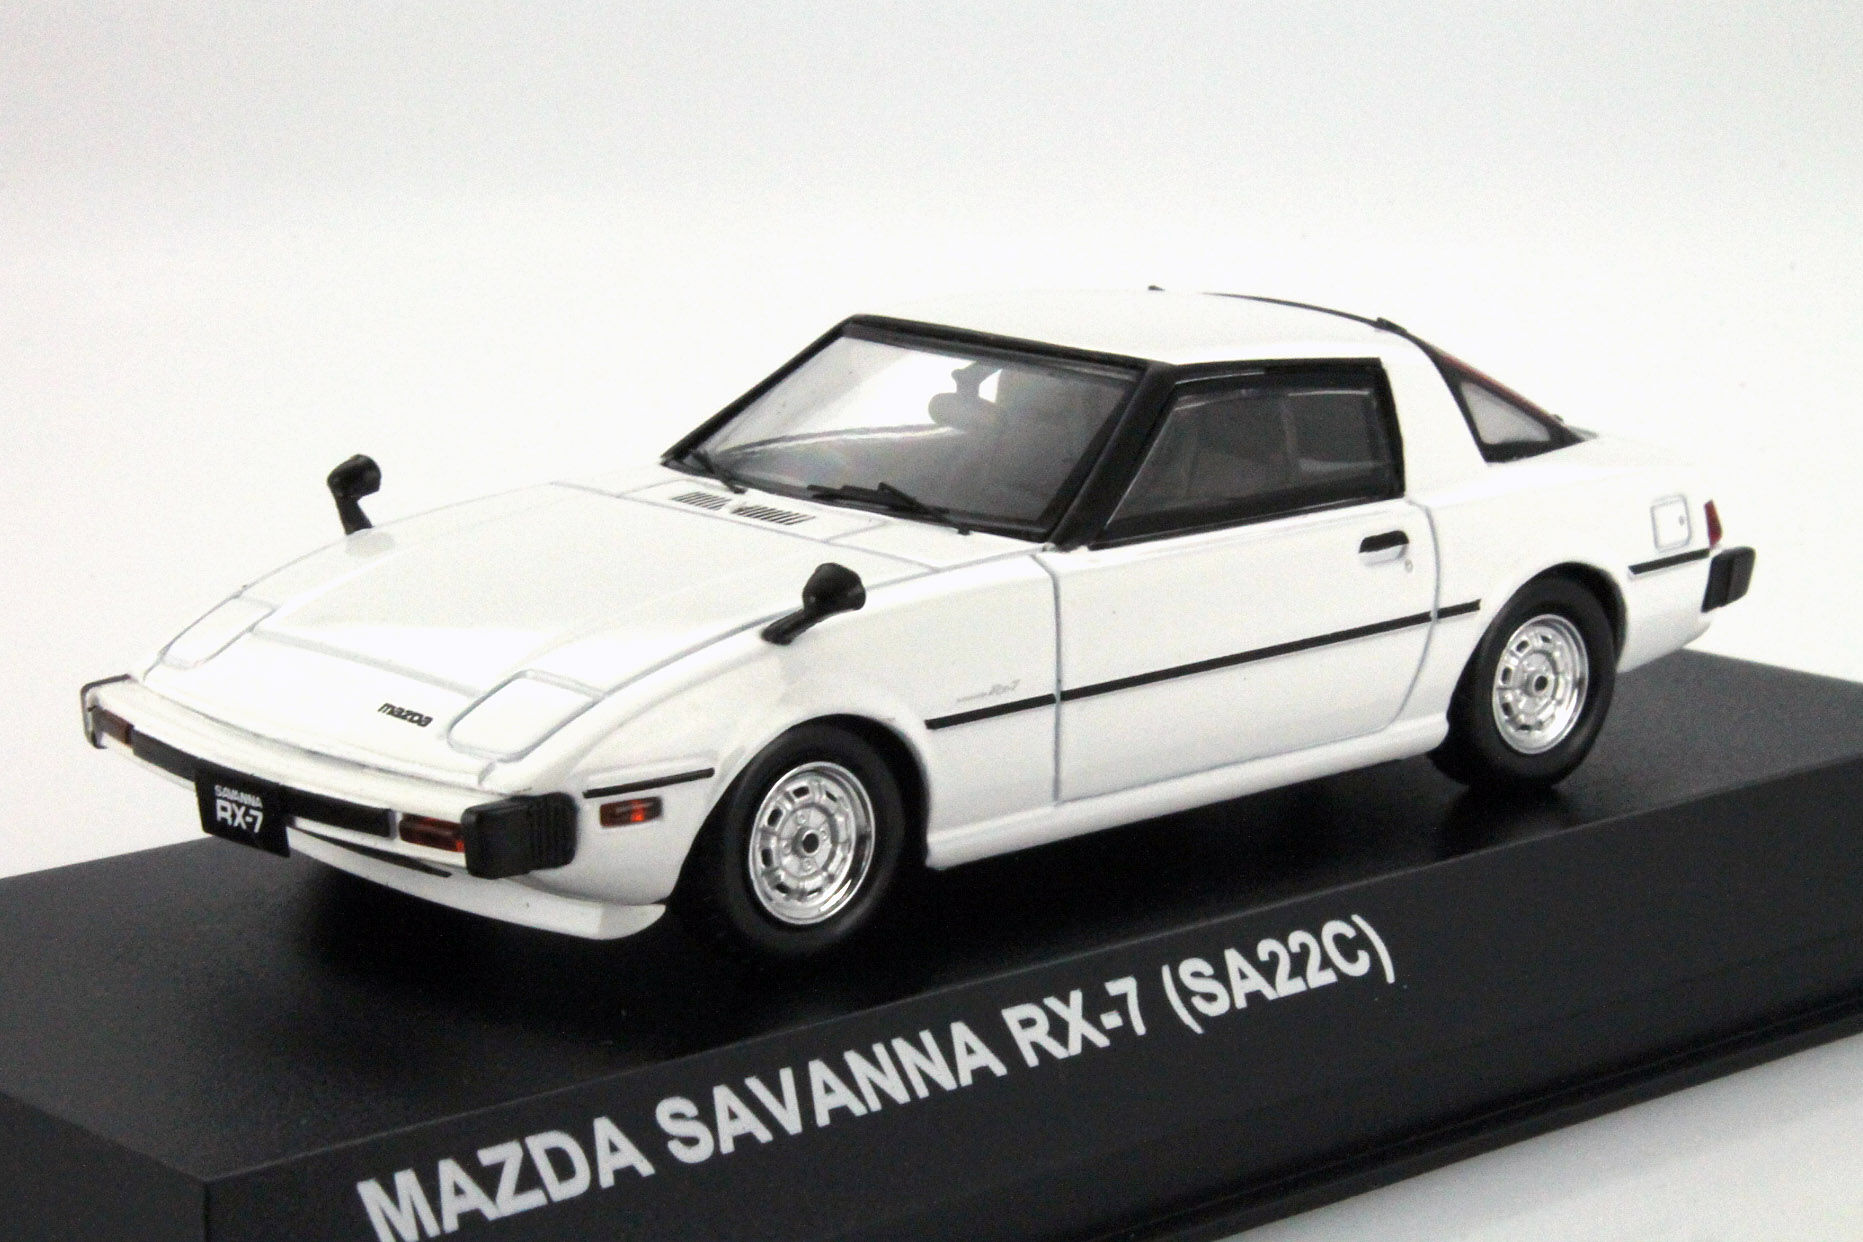 Mazda Savanna RX-7 (SA22C) White